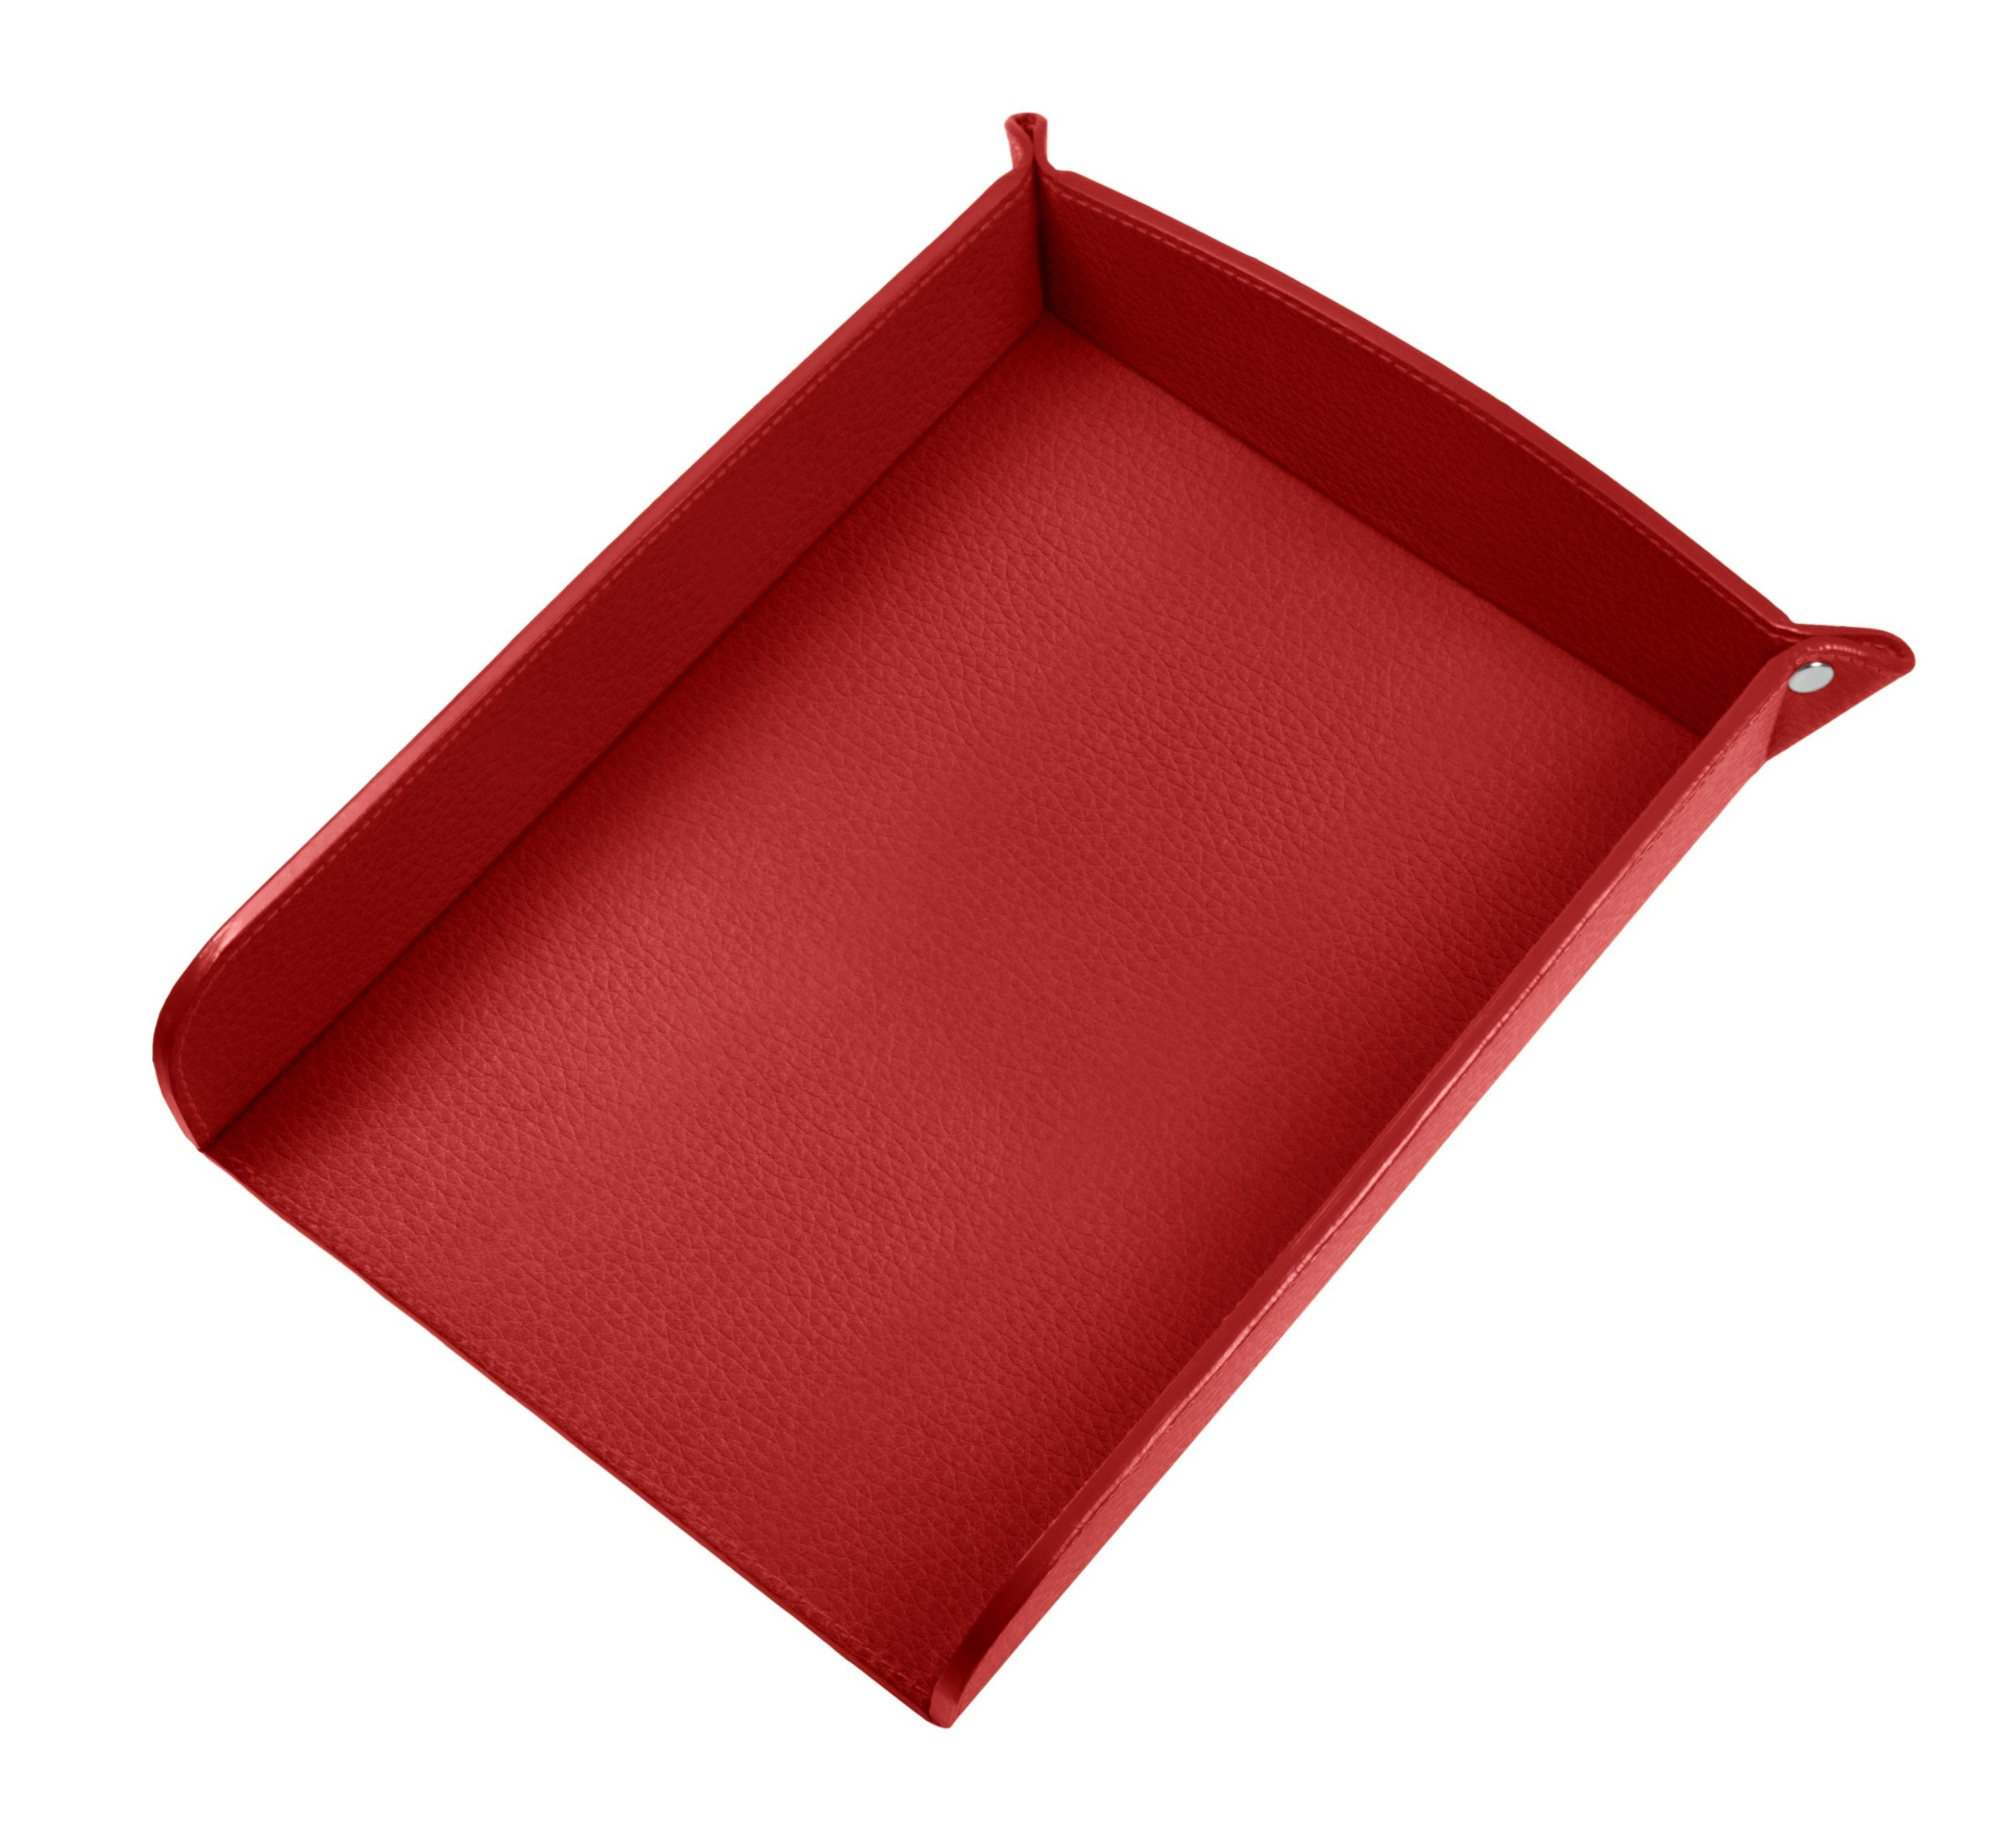 Lucrin USA Inc. A5 Paper Leather Holder, Granulated Cow, Red